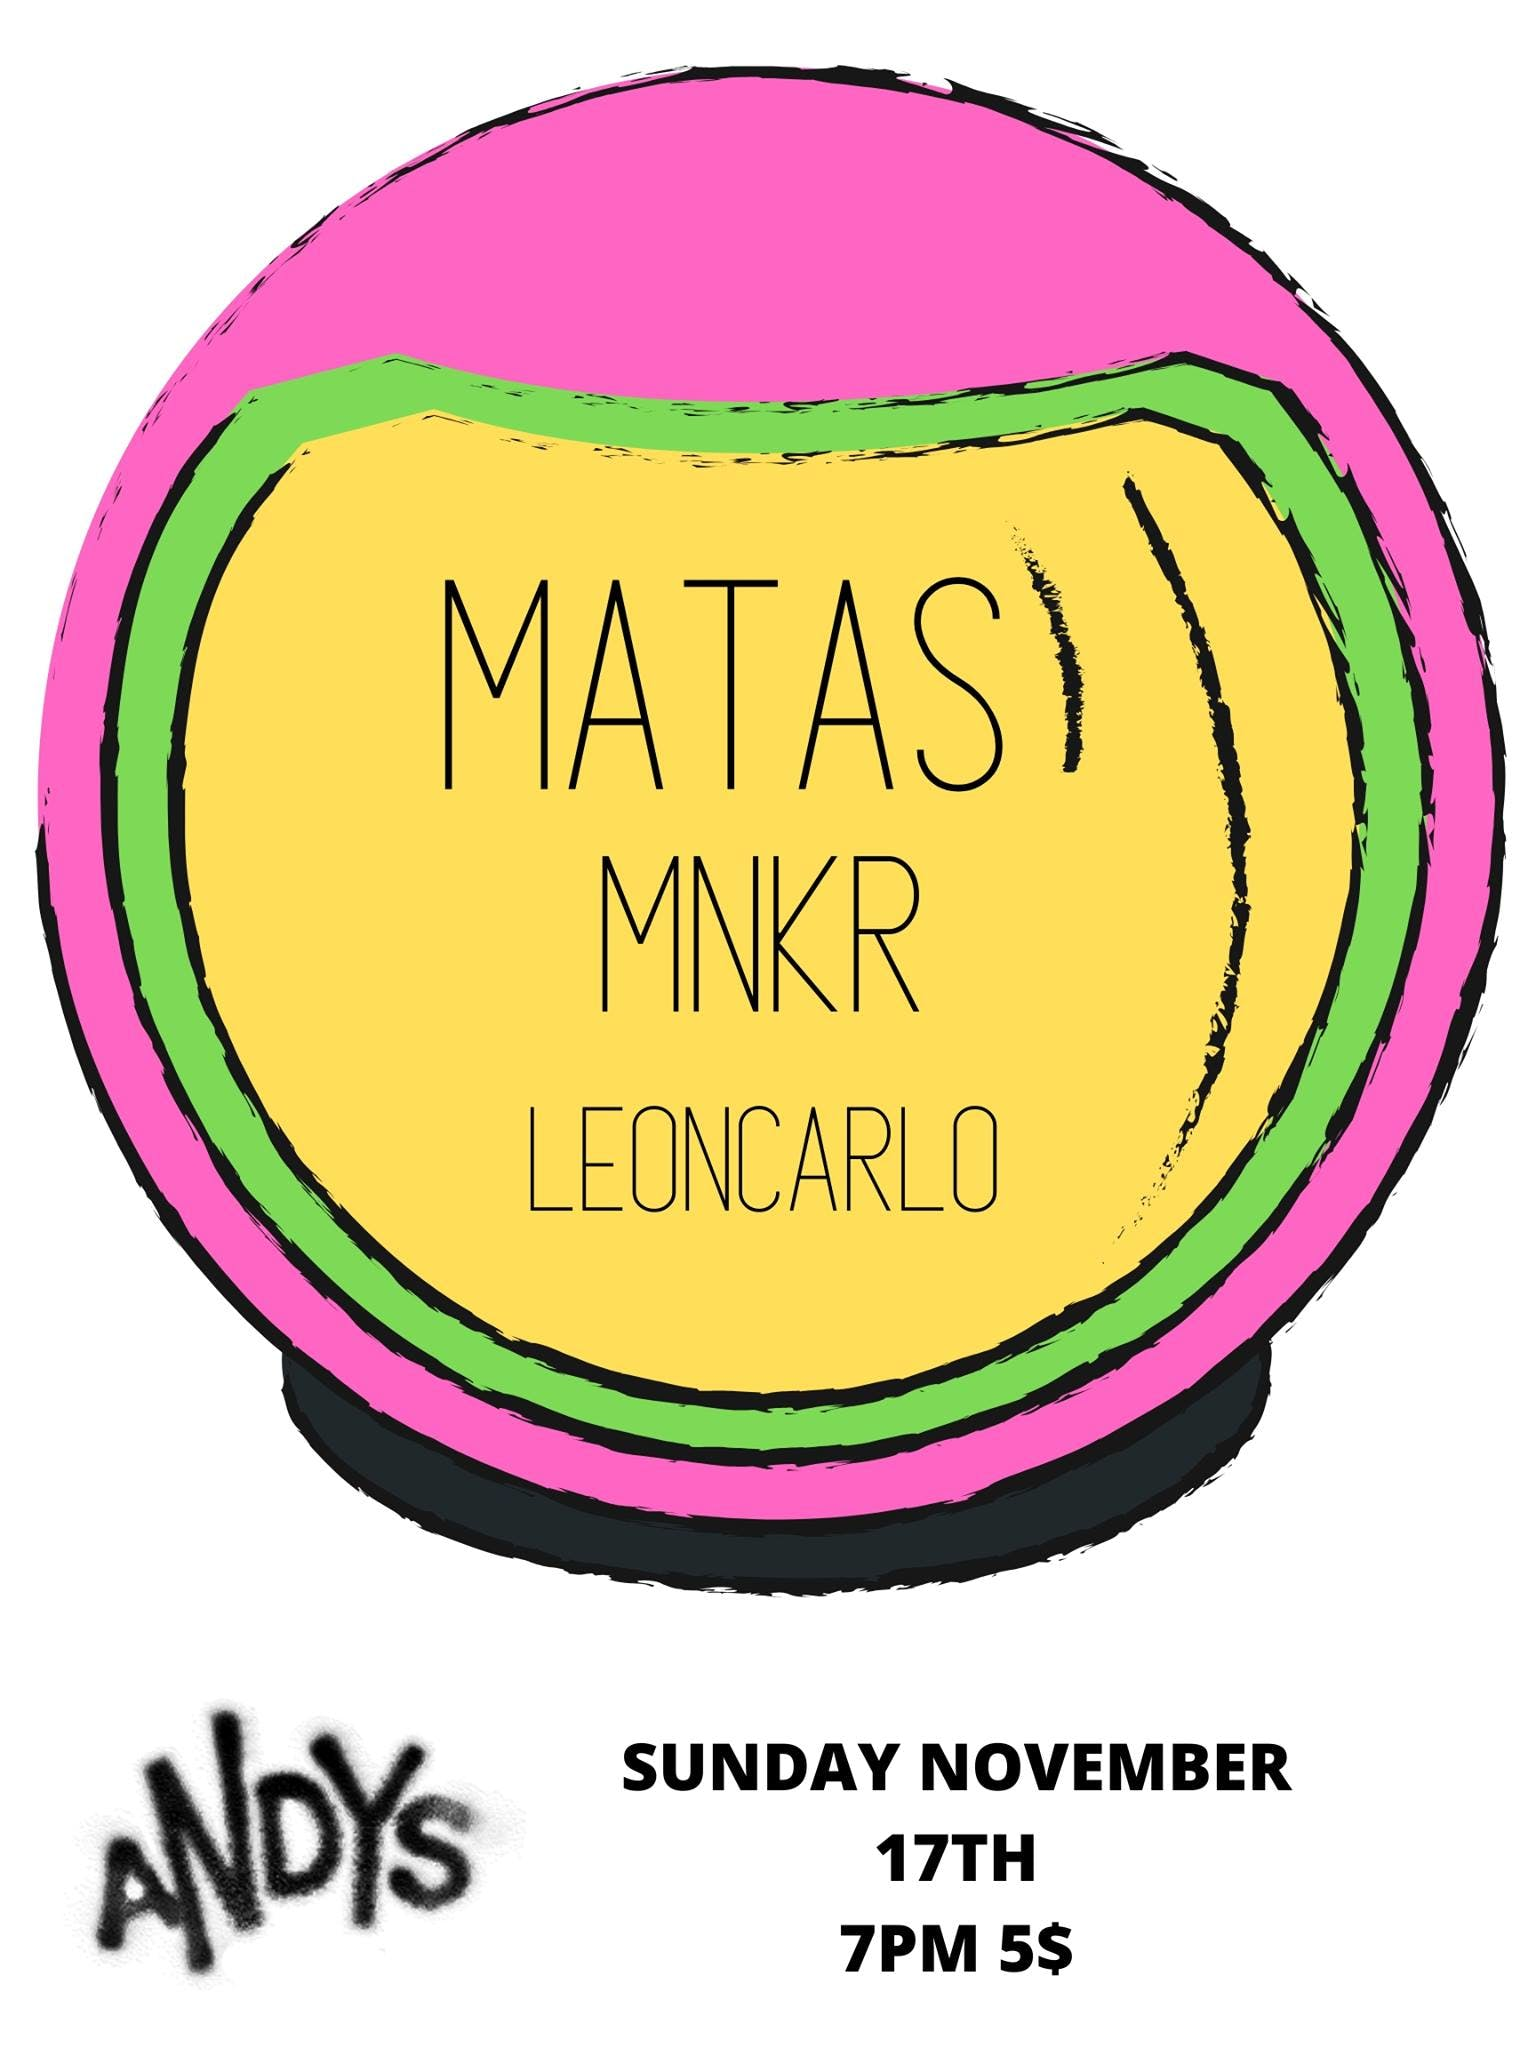 MATAS and friends Early Sunday Show!